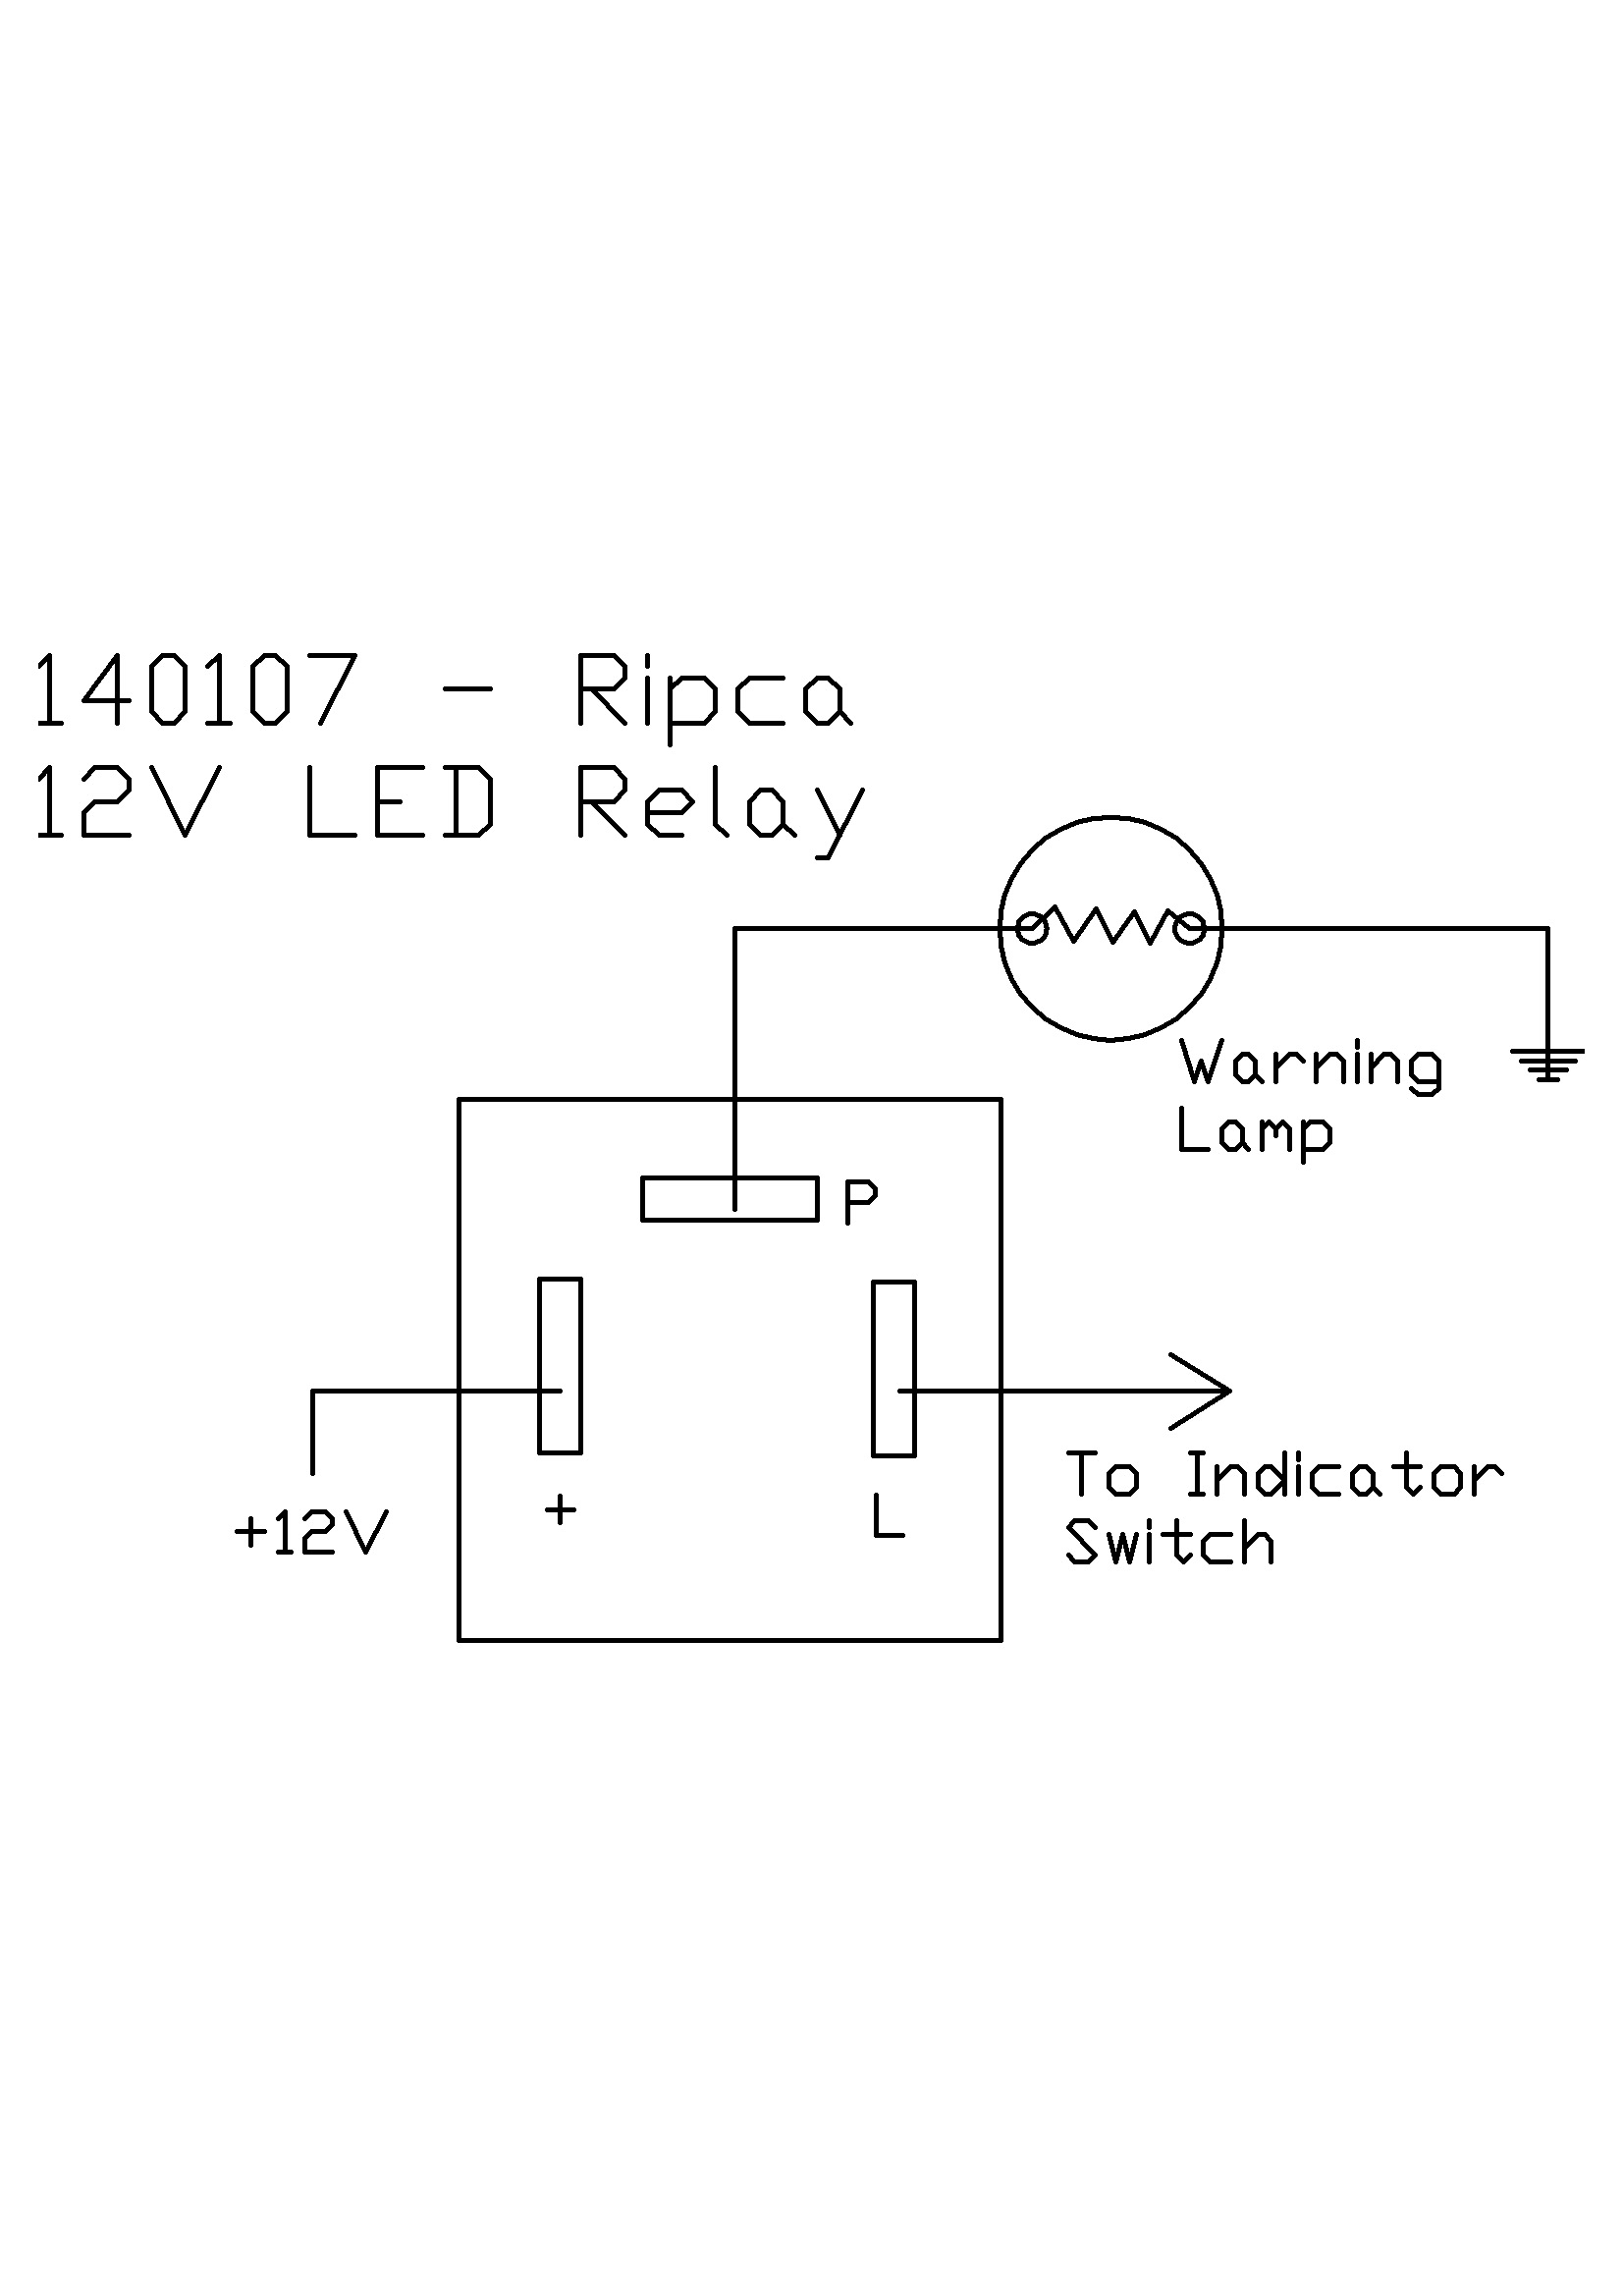 140107 ripca 12 volt led flasher unit led flasher wiring diagram at cita.asia